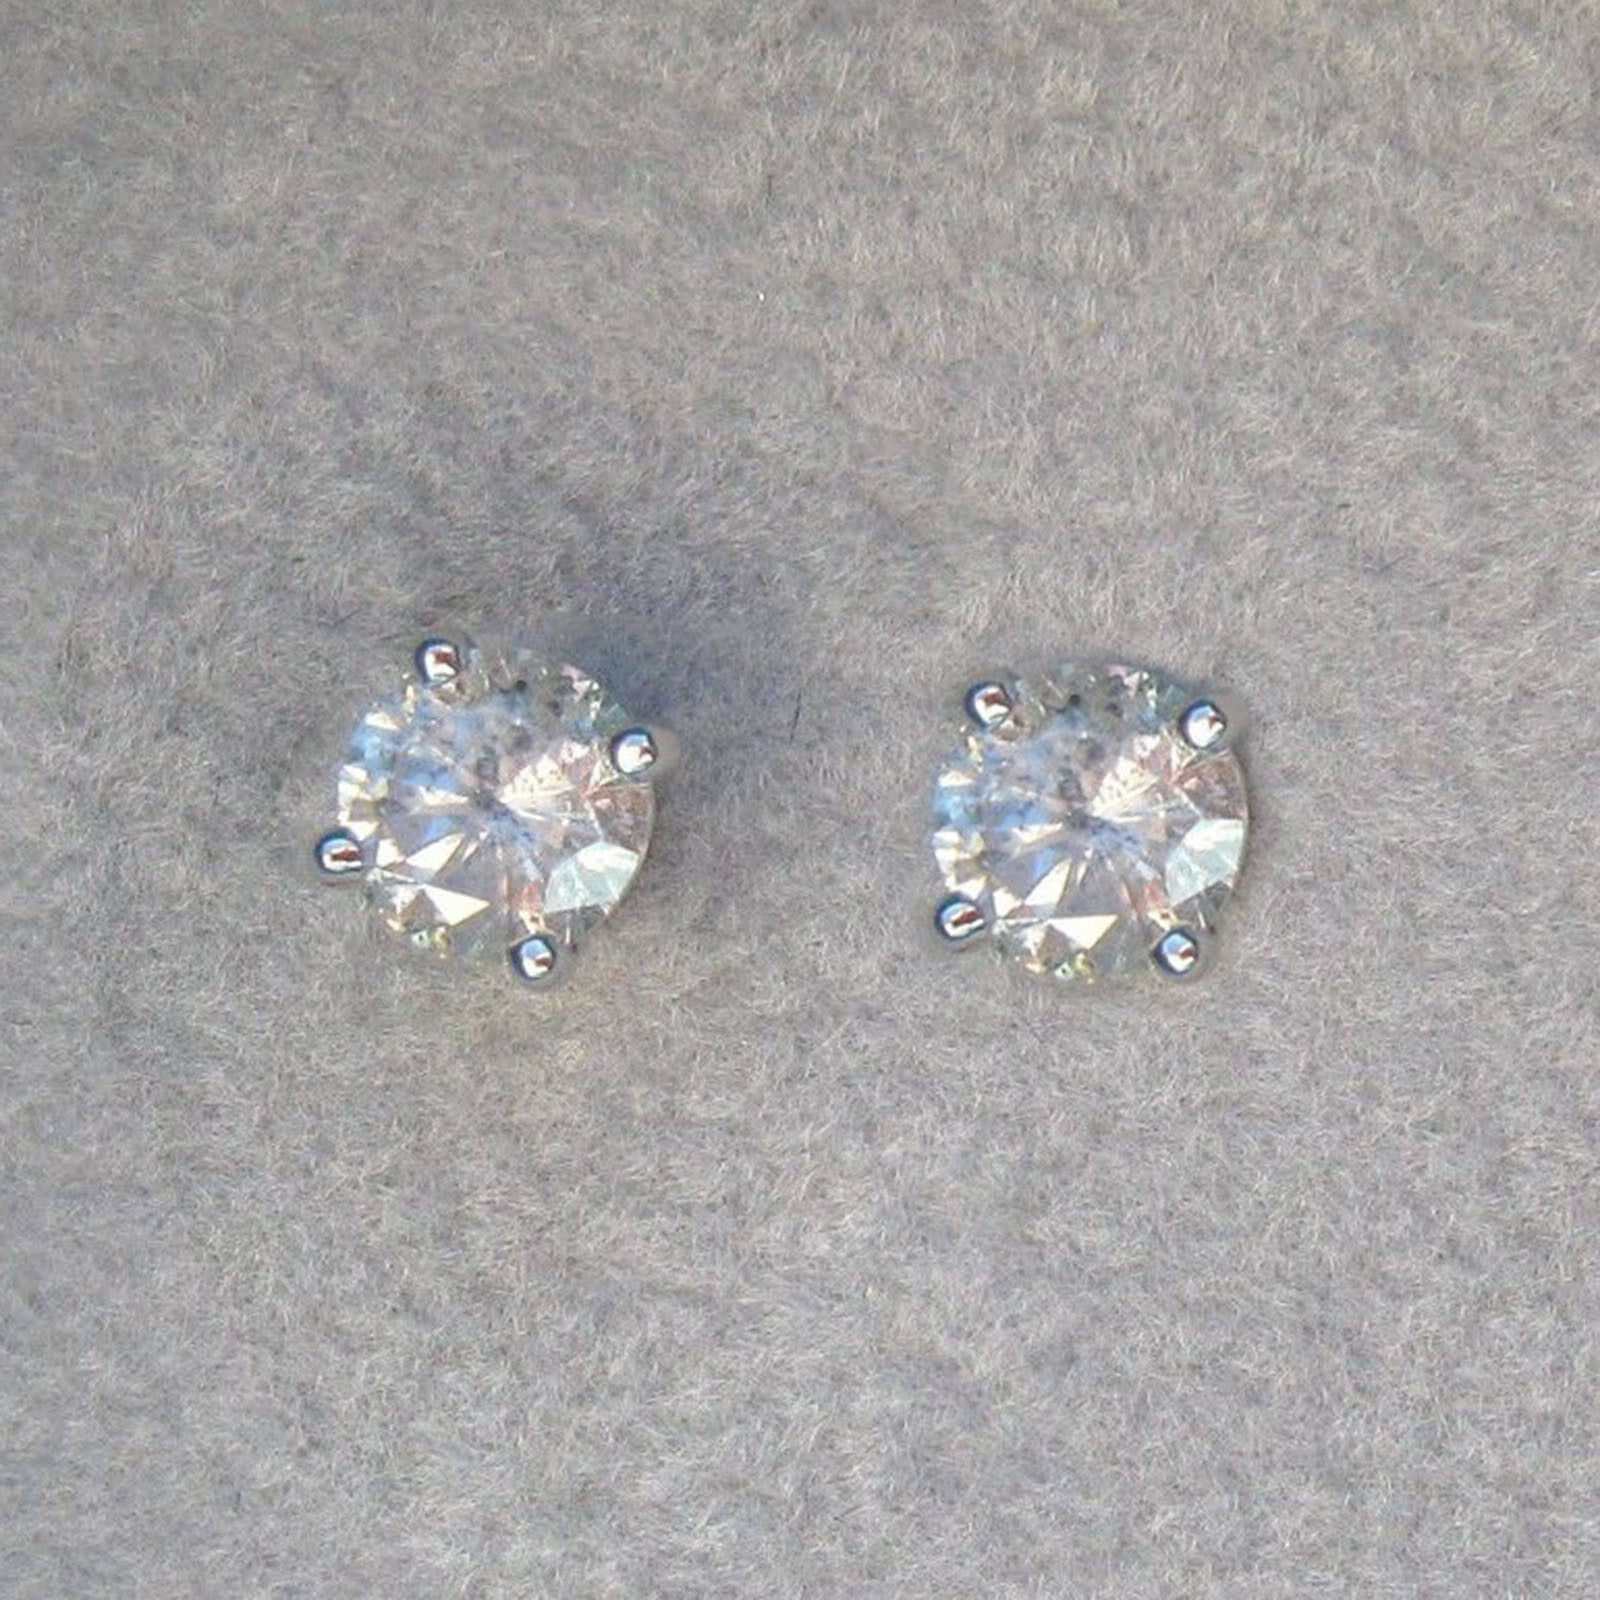 VS1 1.00 Carat  Real & Pure Diamond Earrings Solid 14 Kt White gold Stud -